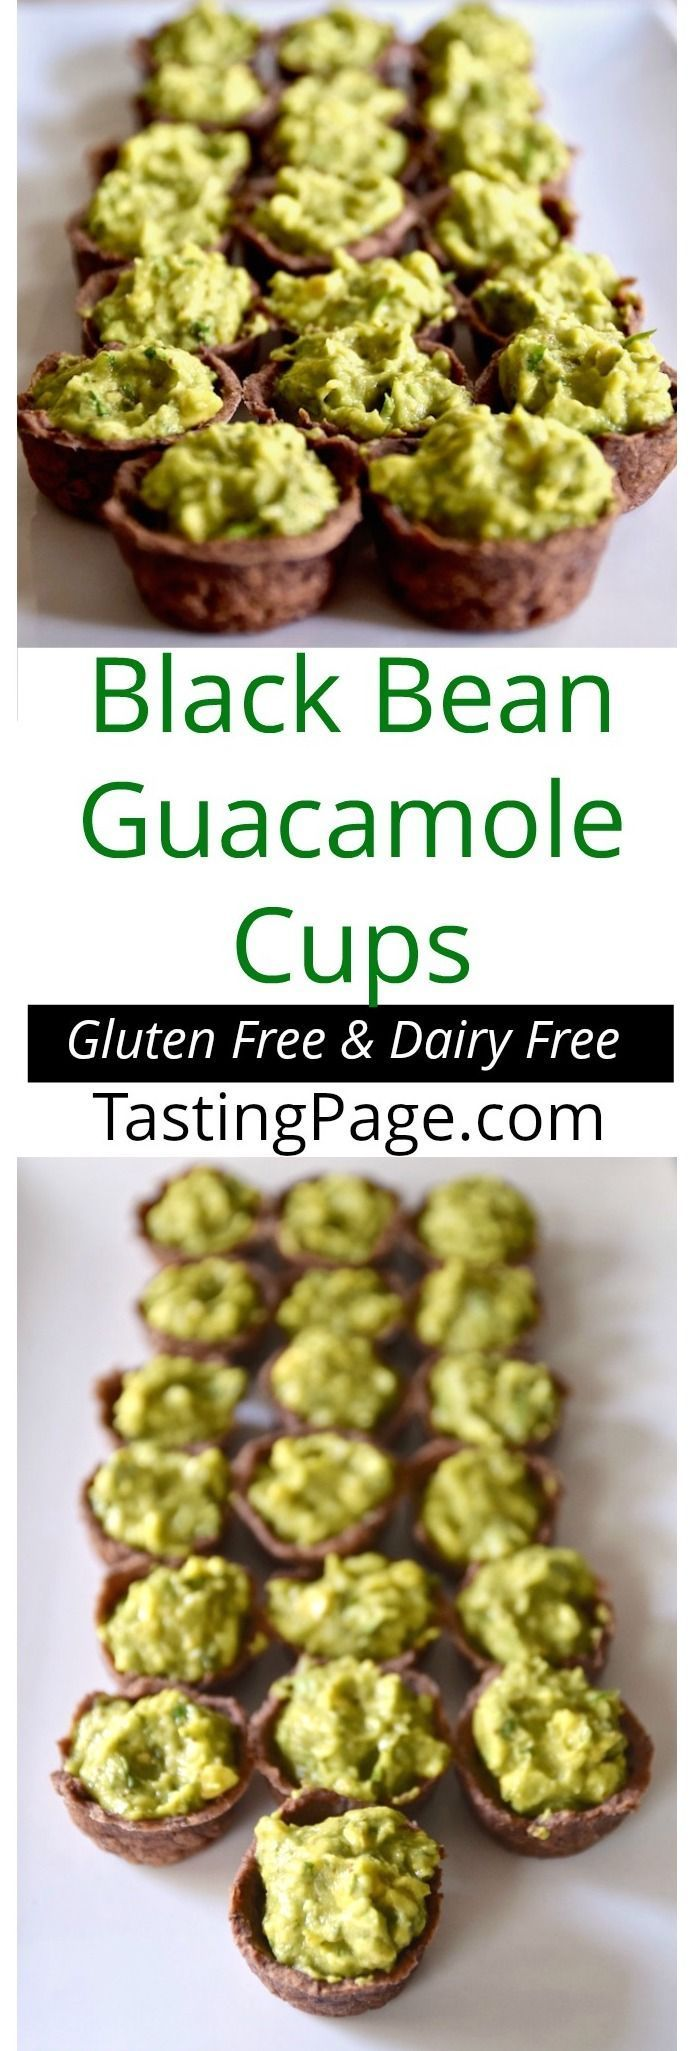 Save the chip with these gluten free dairy free black bean guacamole cups | TastingPage.com #appetizer #glutenfree #dairyfree #vegan